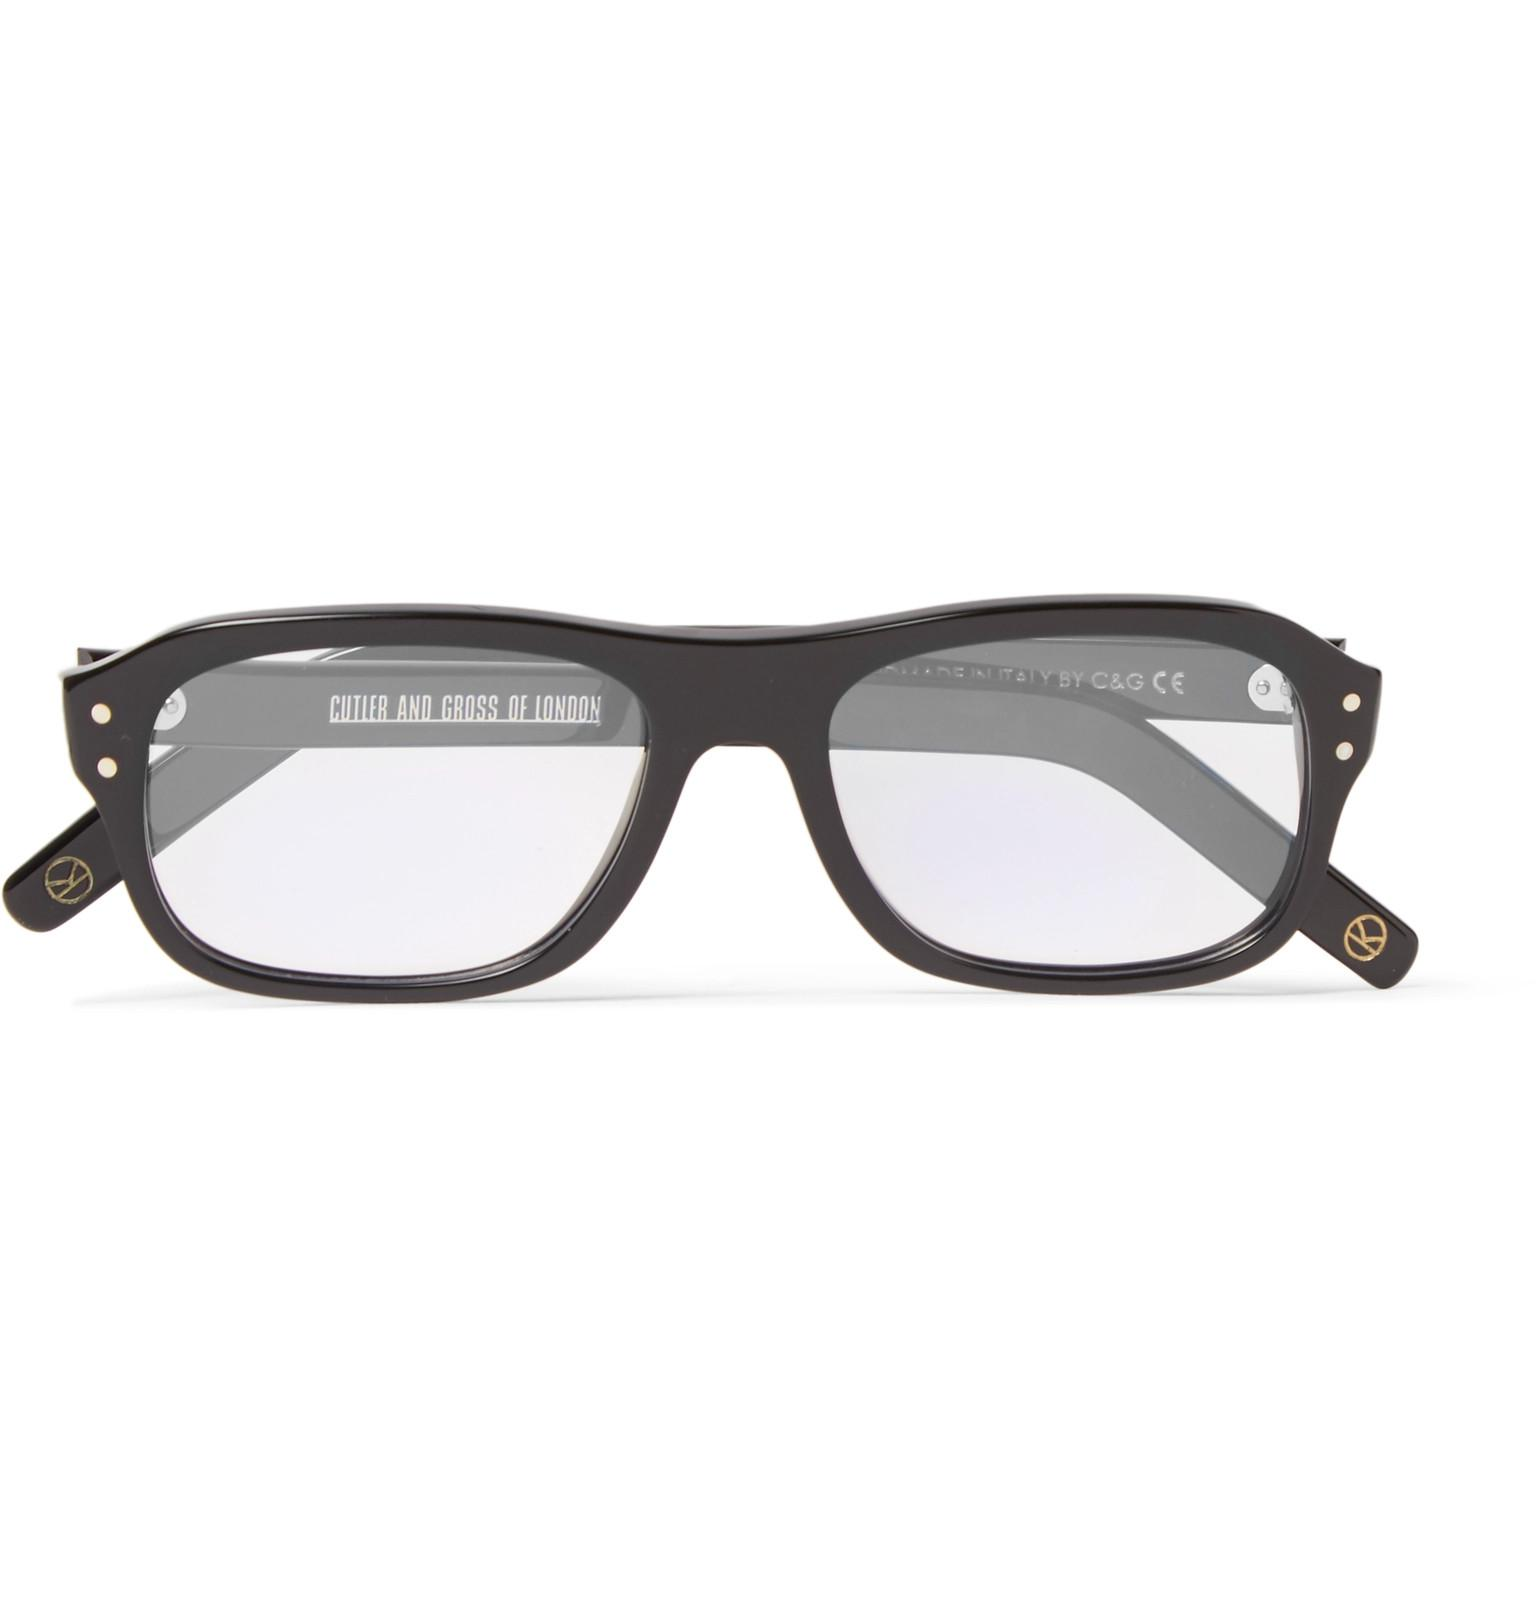 73131fa36e Lyst - Kingsman + Cutler And Gross Eggsy s Square-frame Acetate ...